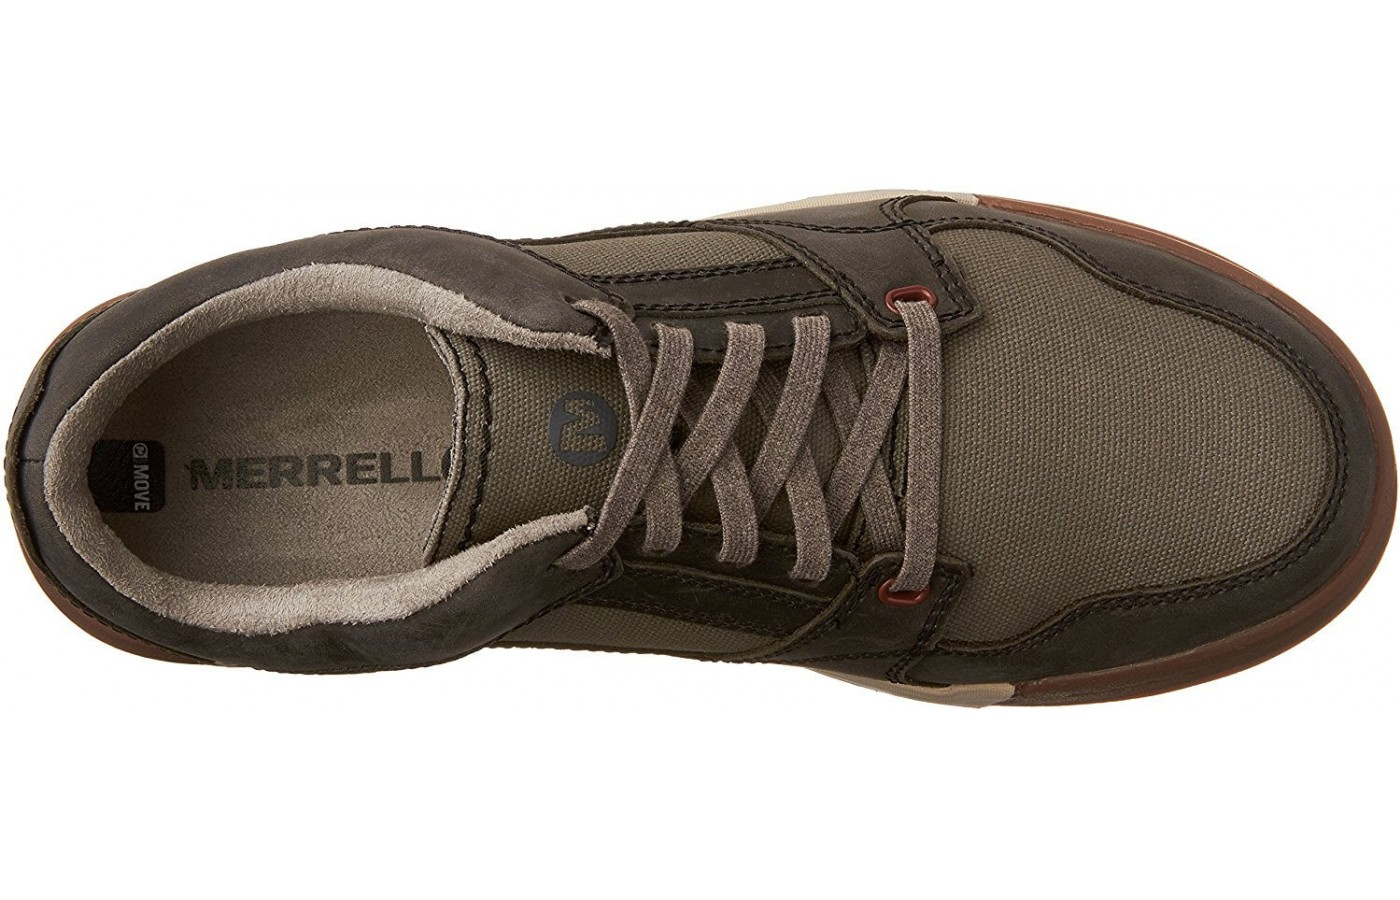 The Merrell Berner Shift Lace features an M Select Fresh liner